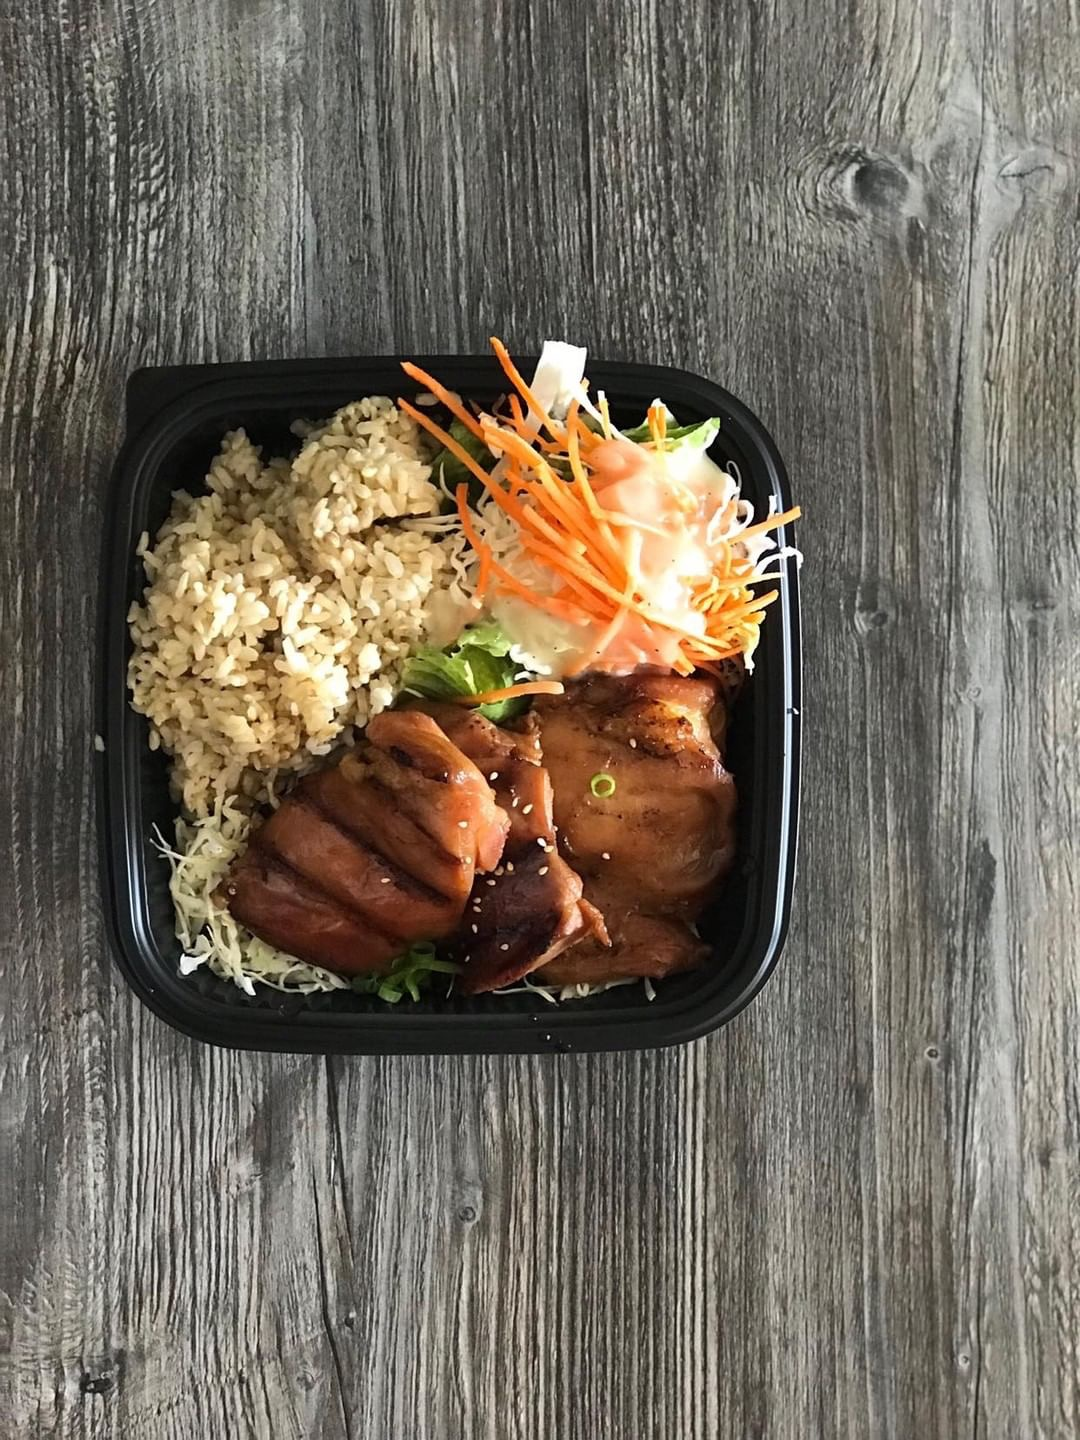 Teriyaki Plate Lunch at Da Kitchen by Kendra Murr | Discover the 10 best things to do in Maui with these insider tips from an ex-resident. #maui #travel #hawaii